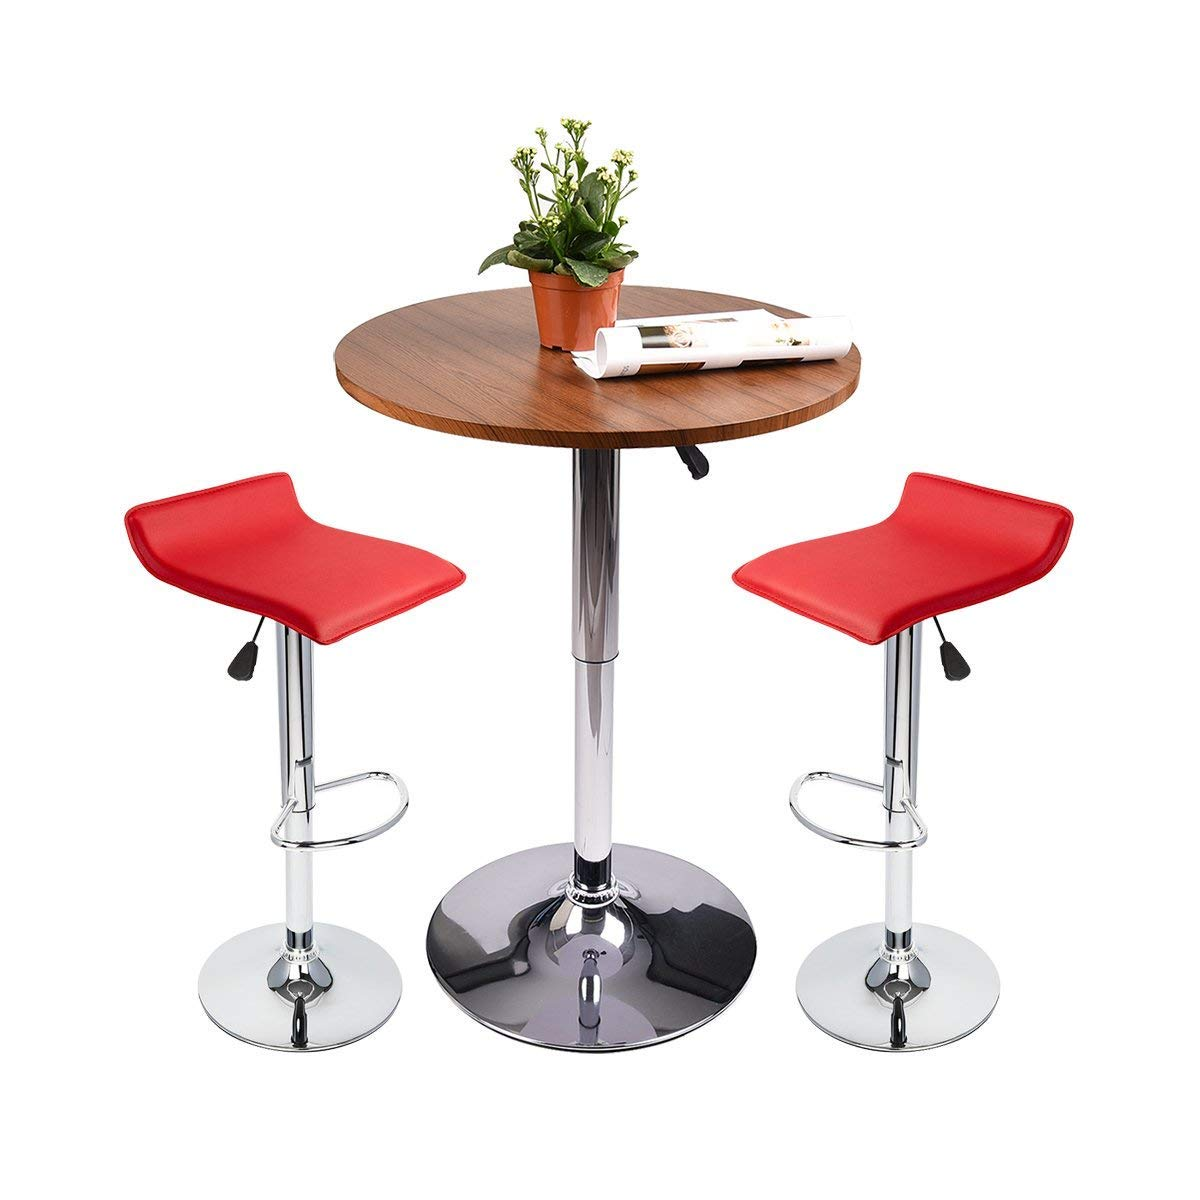 Bar Table Set of 3 – Adjustable Round Table and 2 Swivel Pub Stools for Home Kitchen Bistro, Bars Wine Cabinets (Brown Wood Table+Red S Shape)